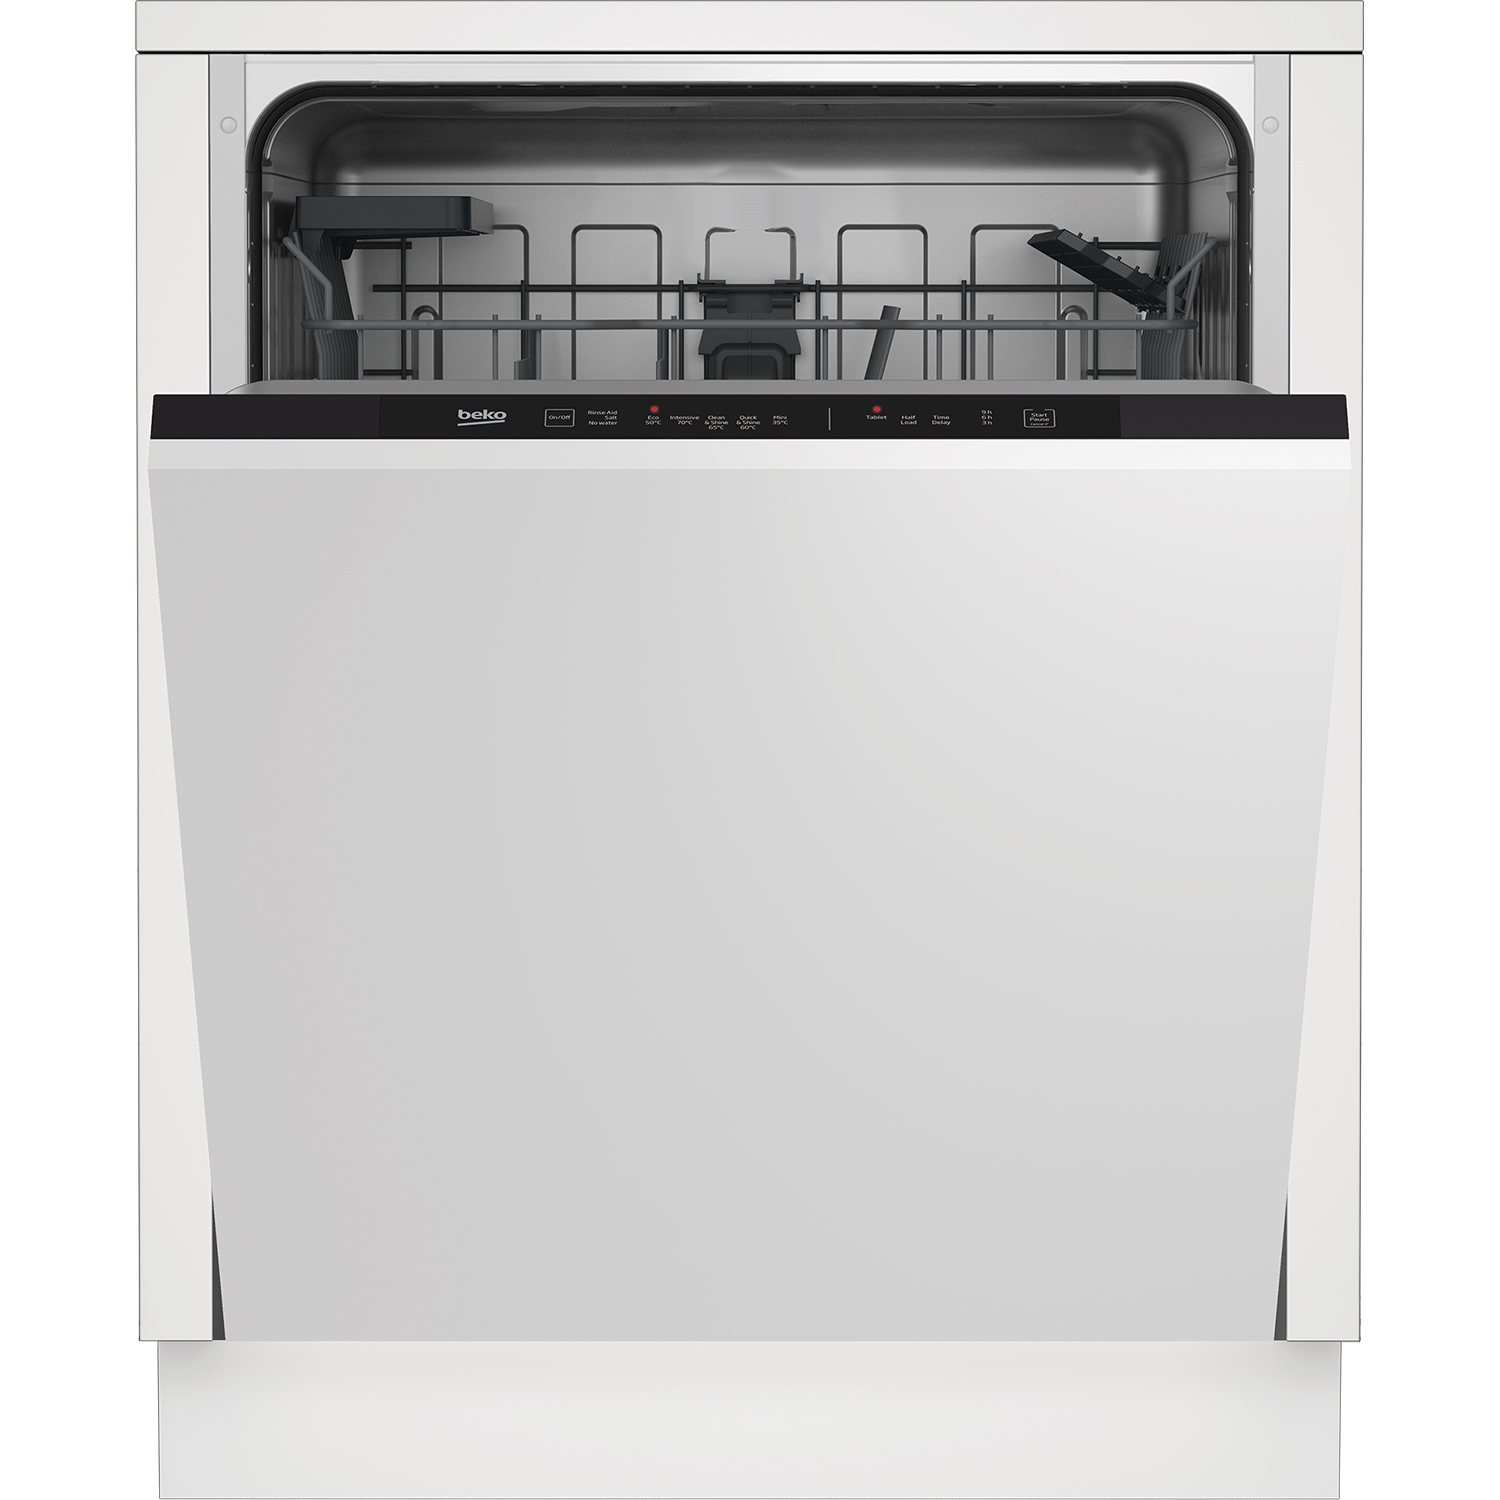 Beko Integrated Dishwasher - Stainless Steel - 14 Place Settings - 0